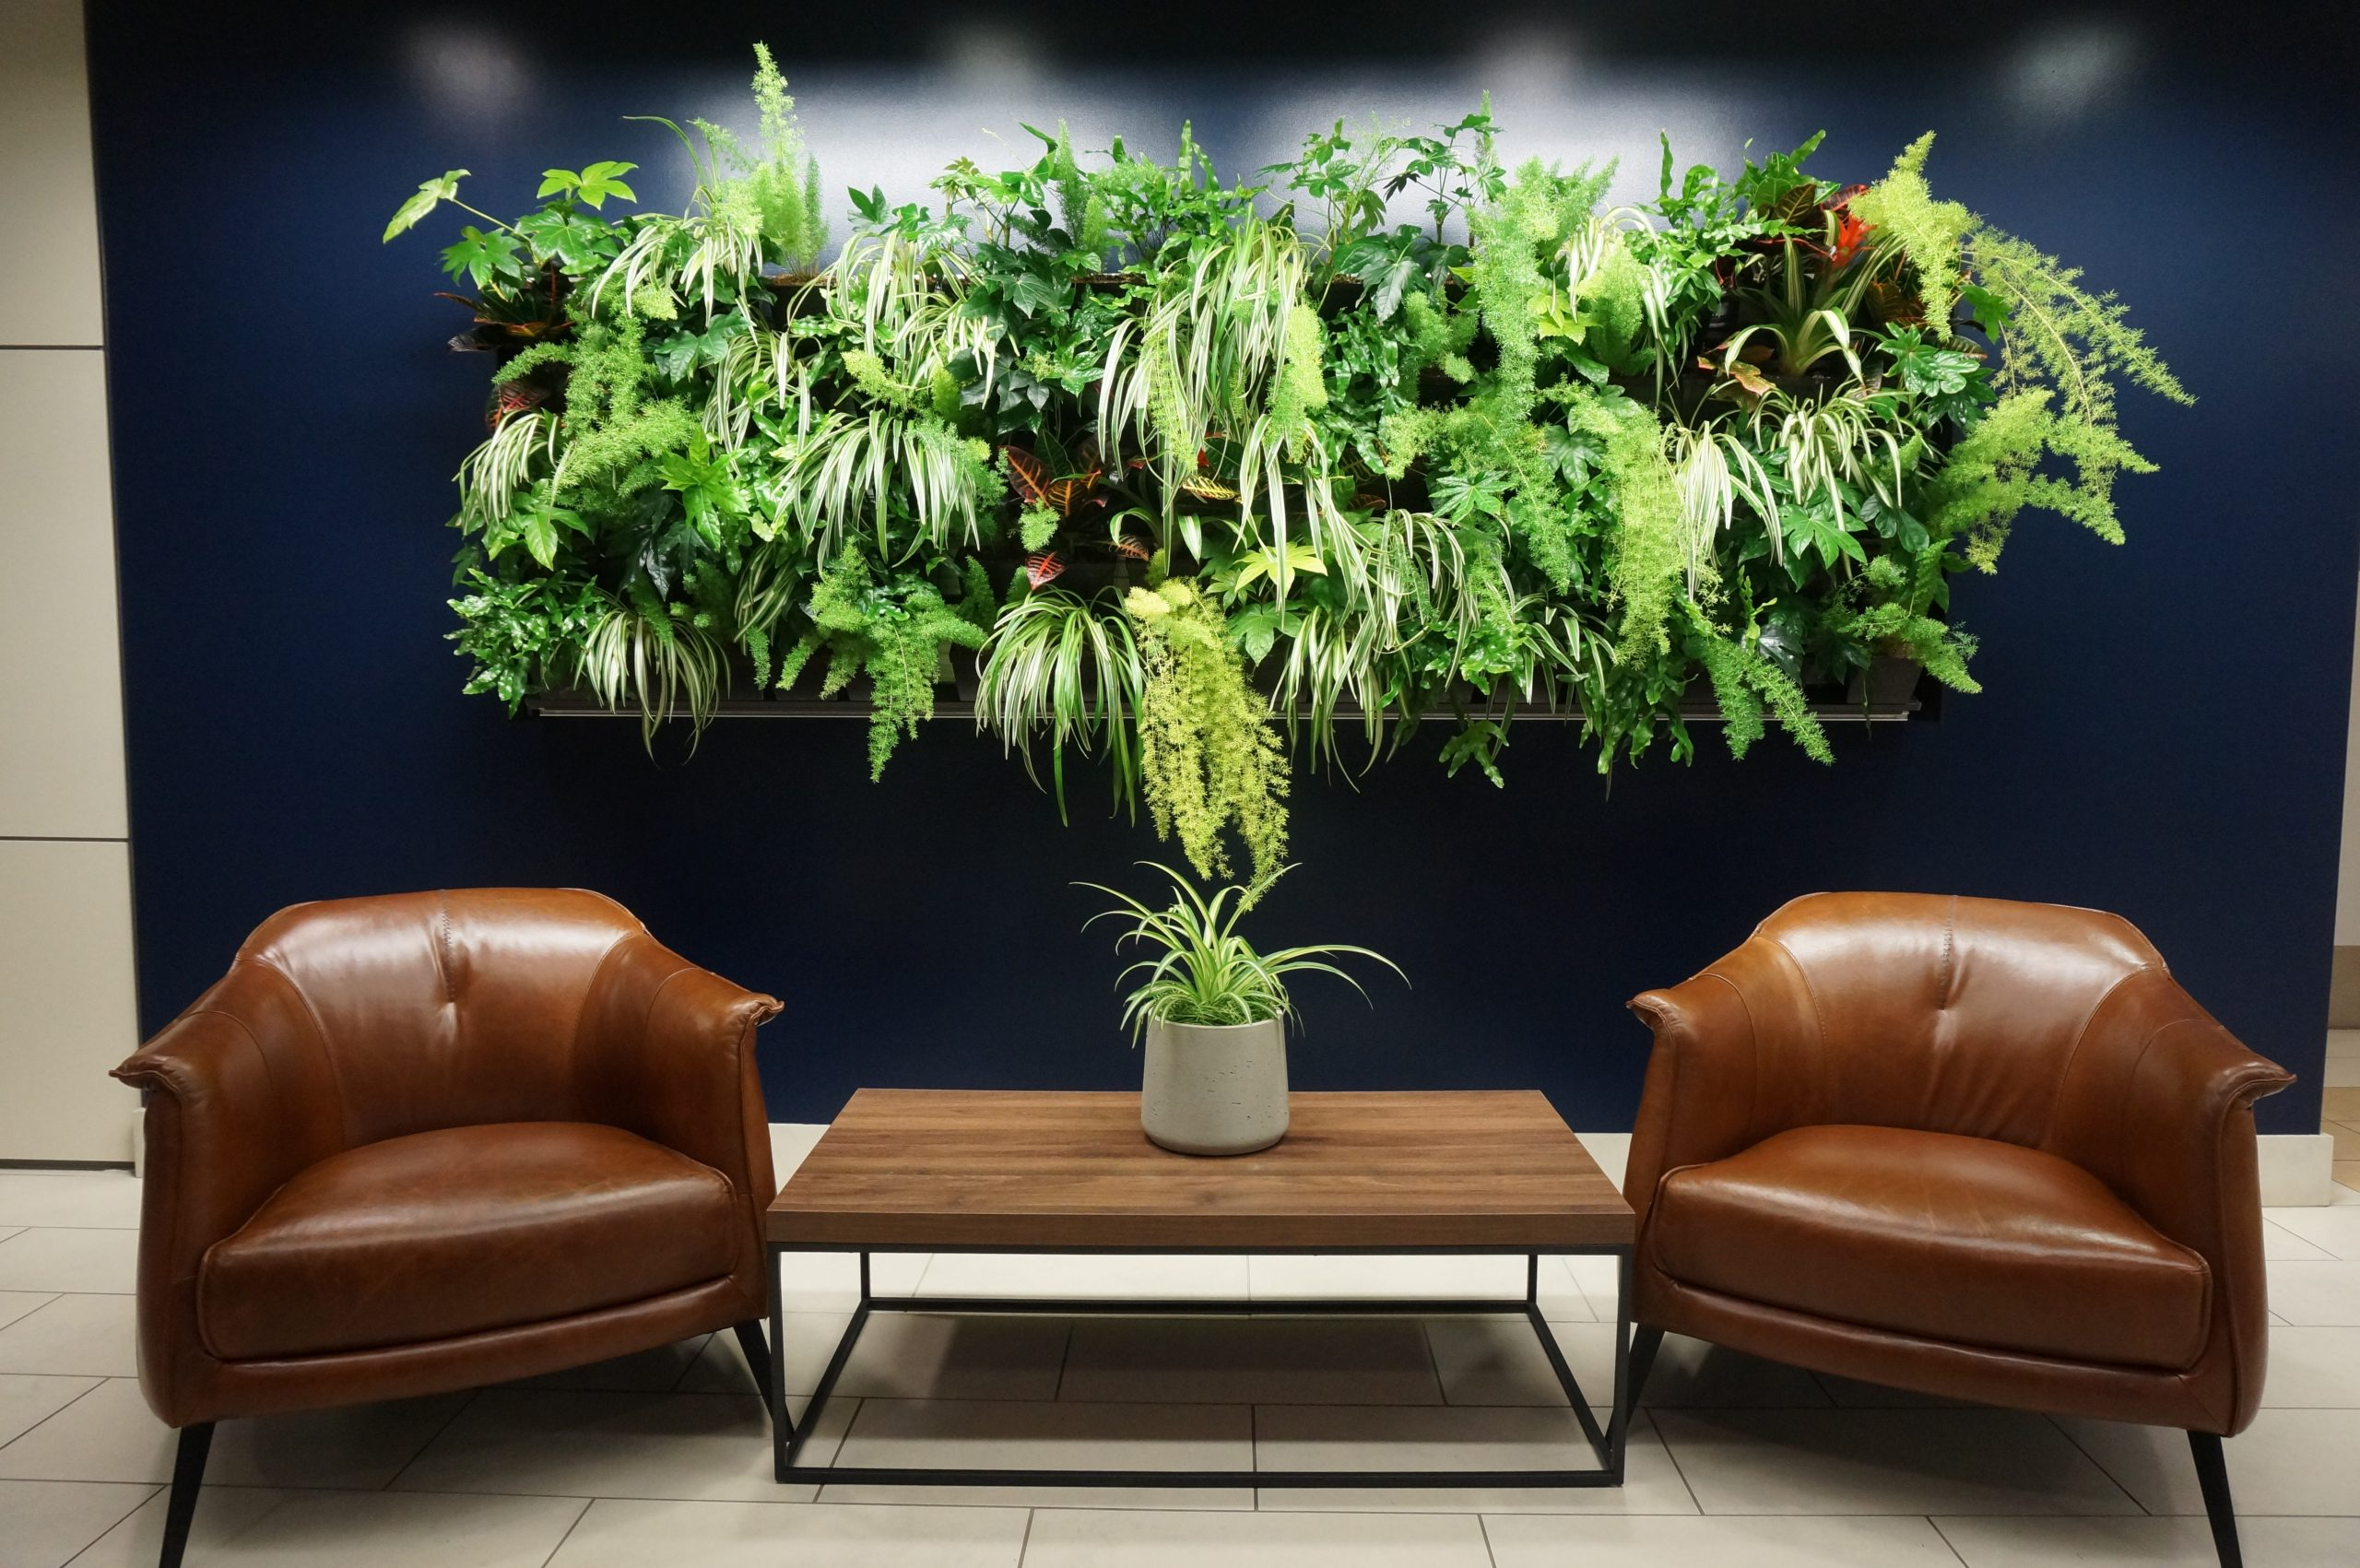 A living wall is a great solution to rooms lacking floor space